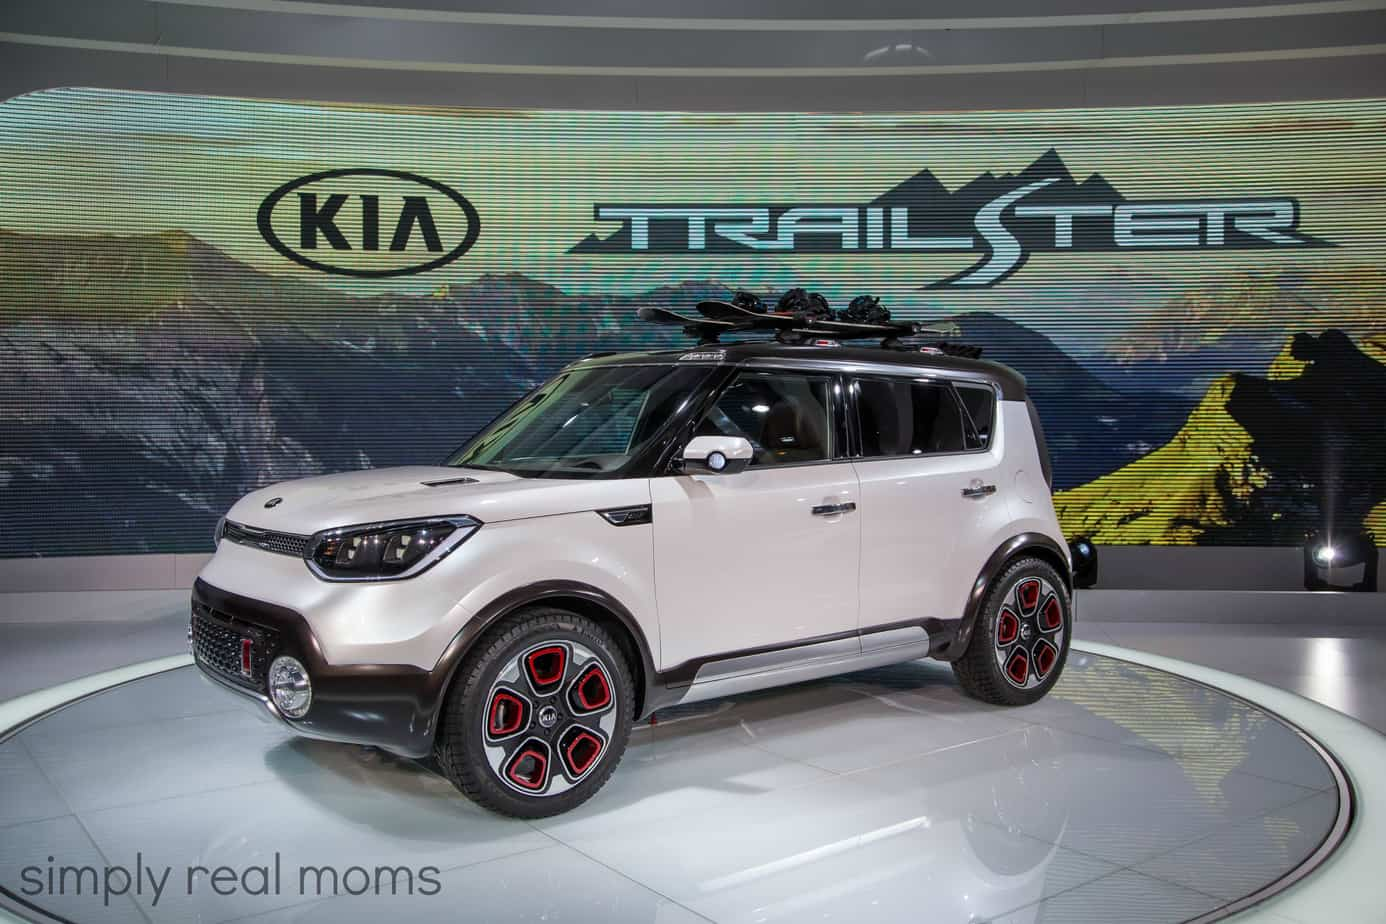 Kia Trail'ster: Because Every Concept Car Should Have a Story 2